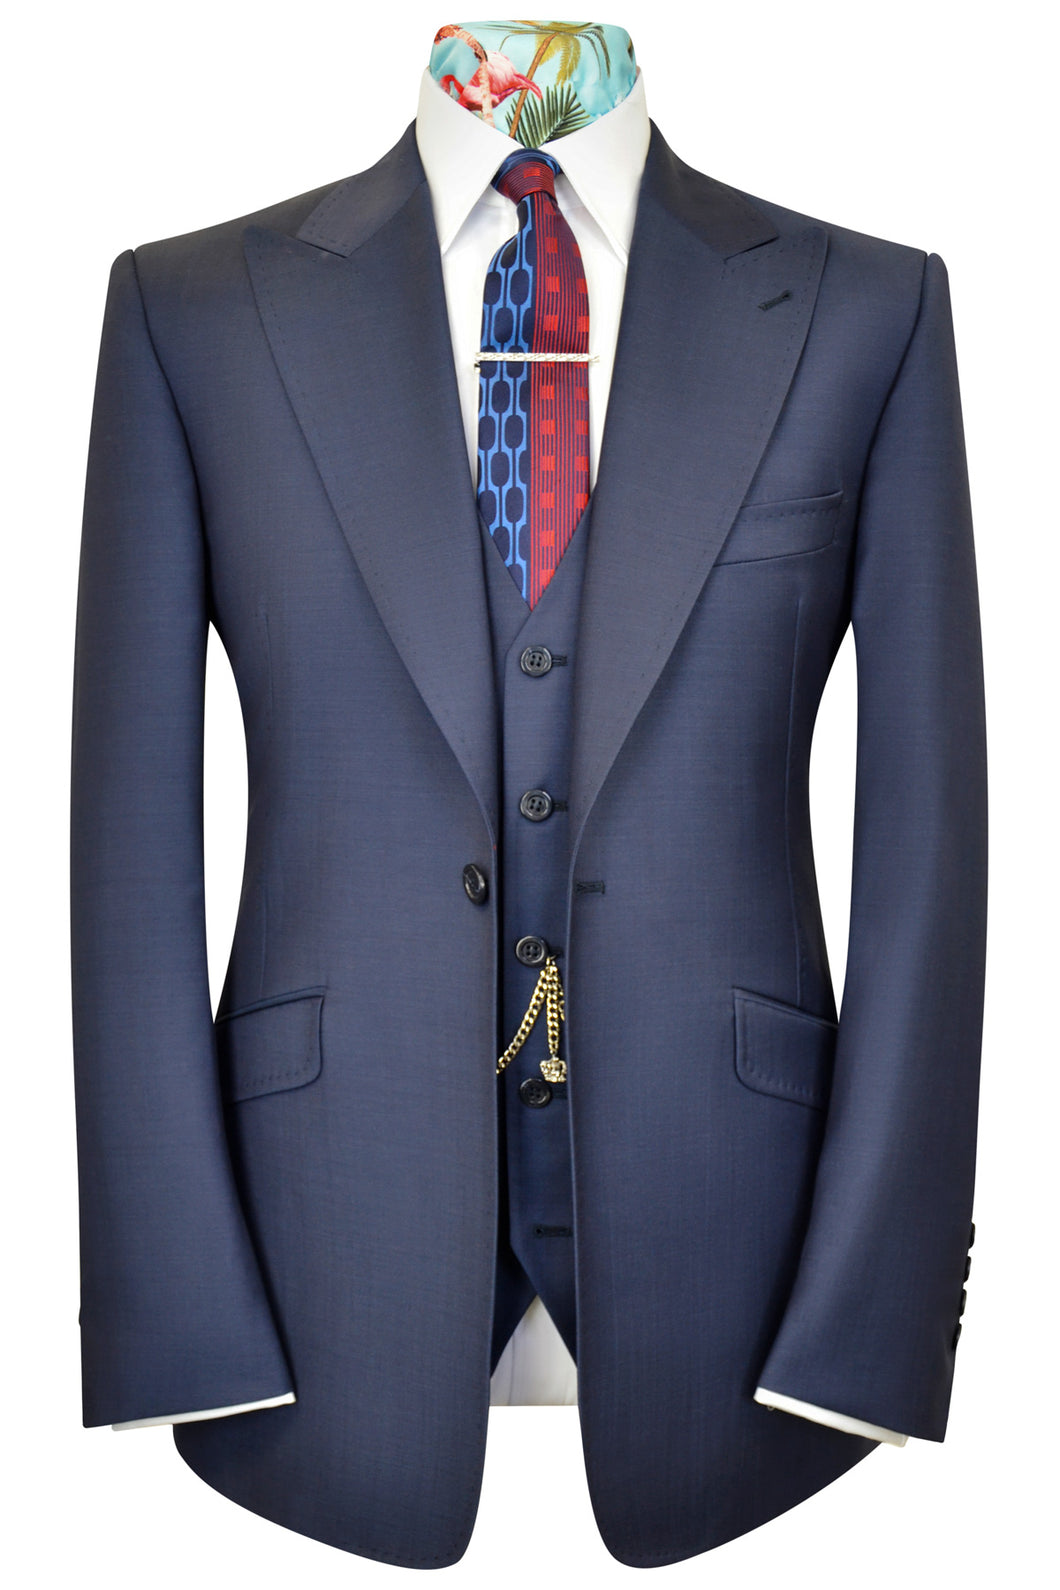 Airforce blue three piece peak lapel suit